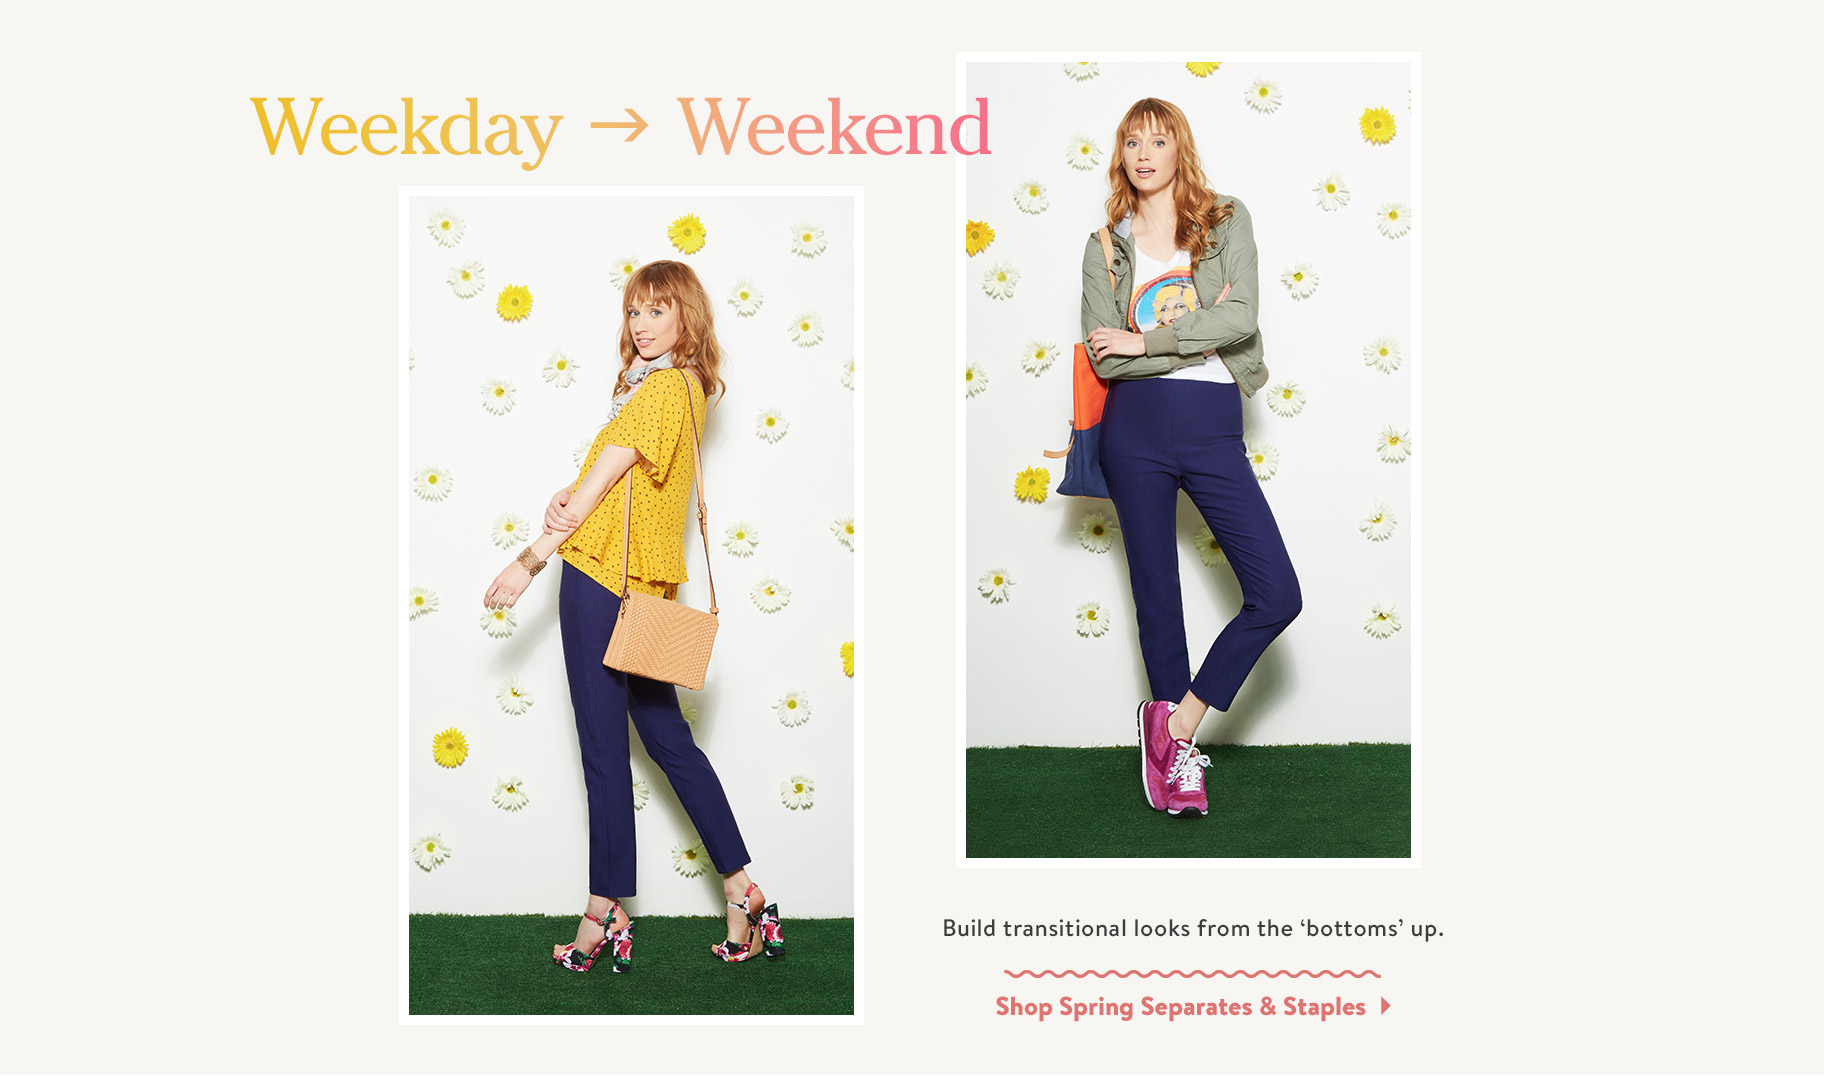 Weekday to Weekend. Build transittional looks from the 'bottoms' up. Shop Spring Separates & Staples.